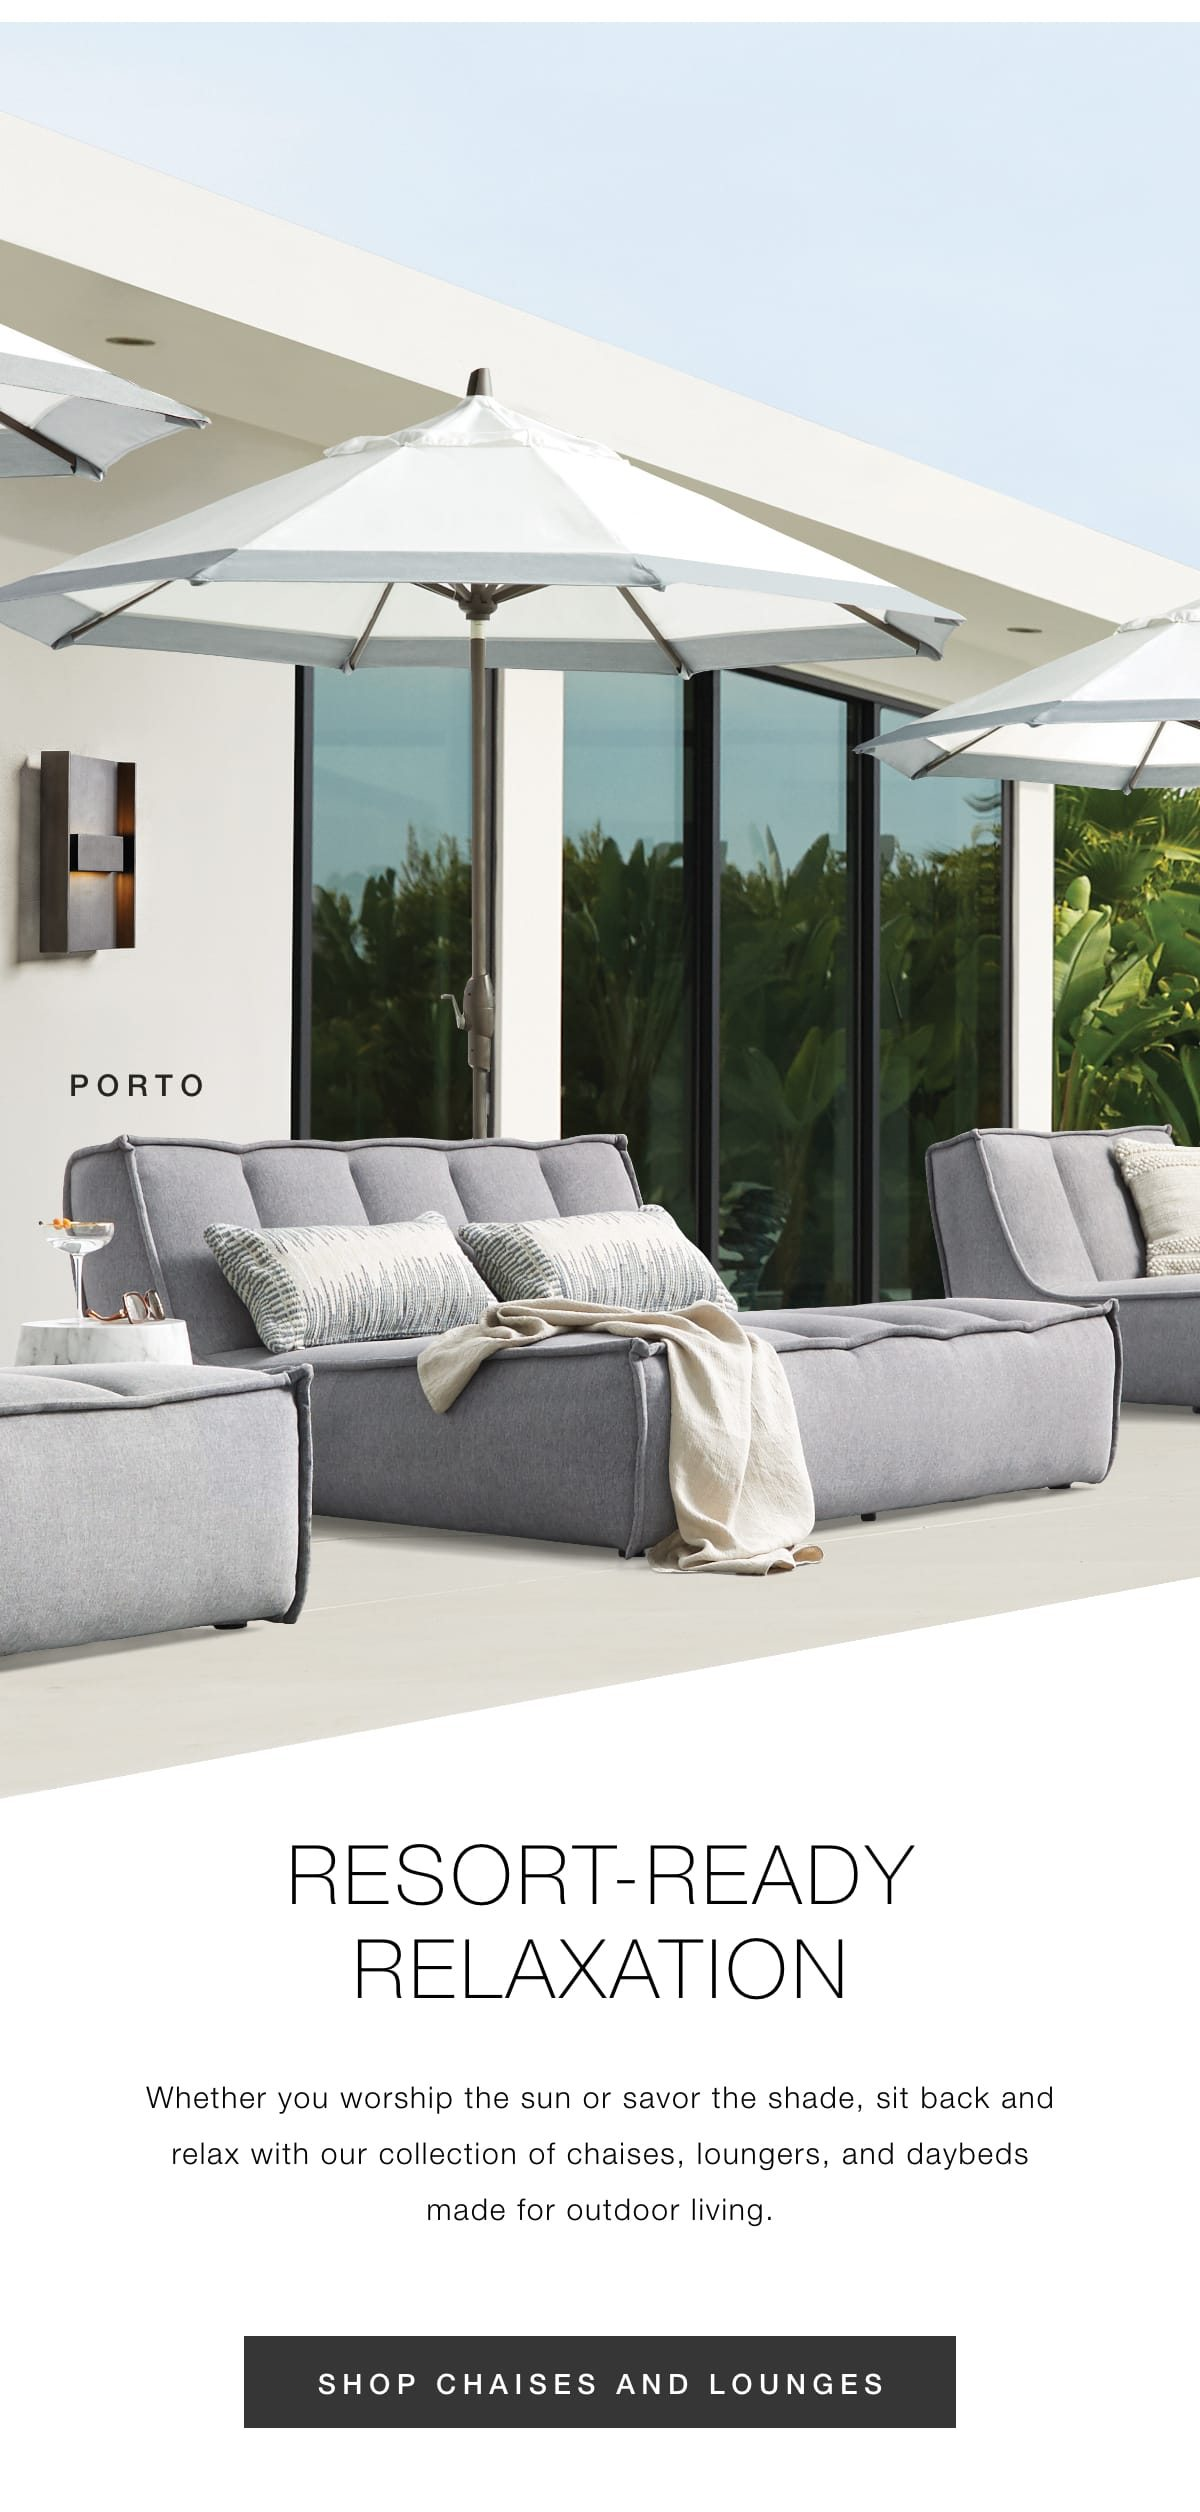 Shop chaises and lounges